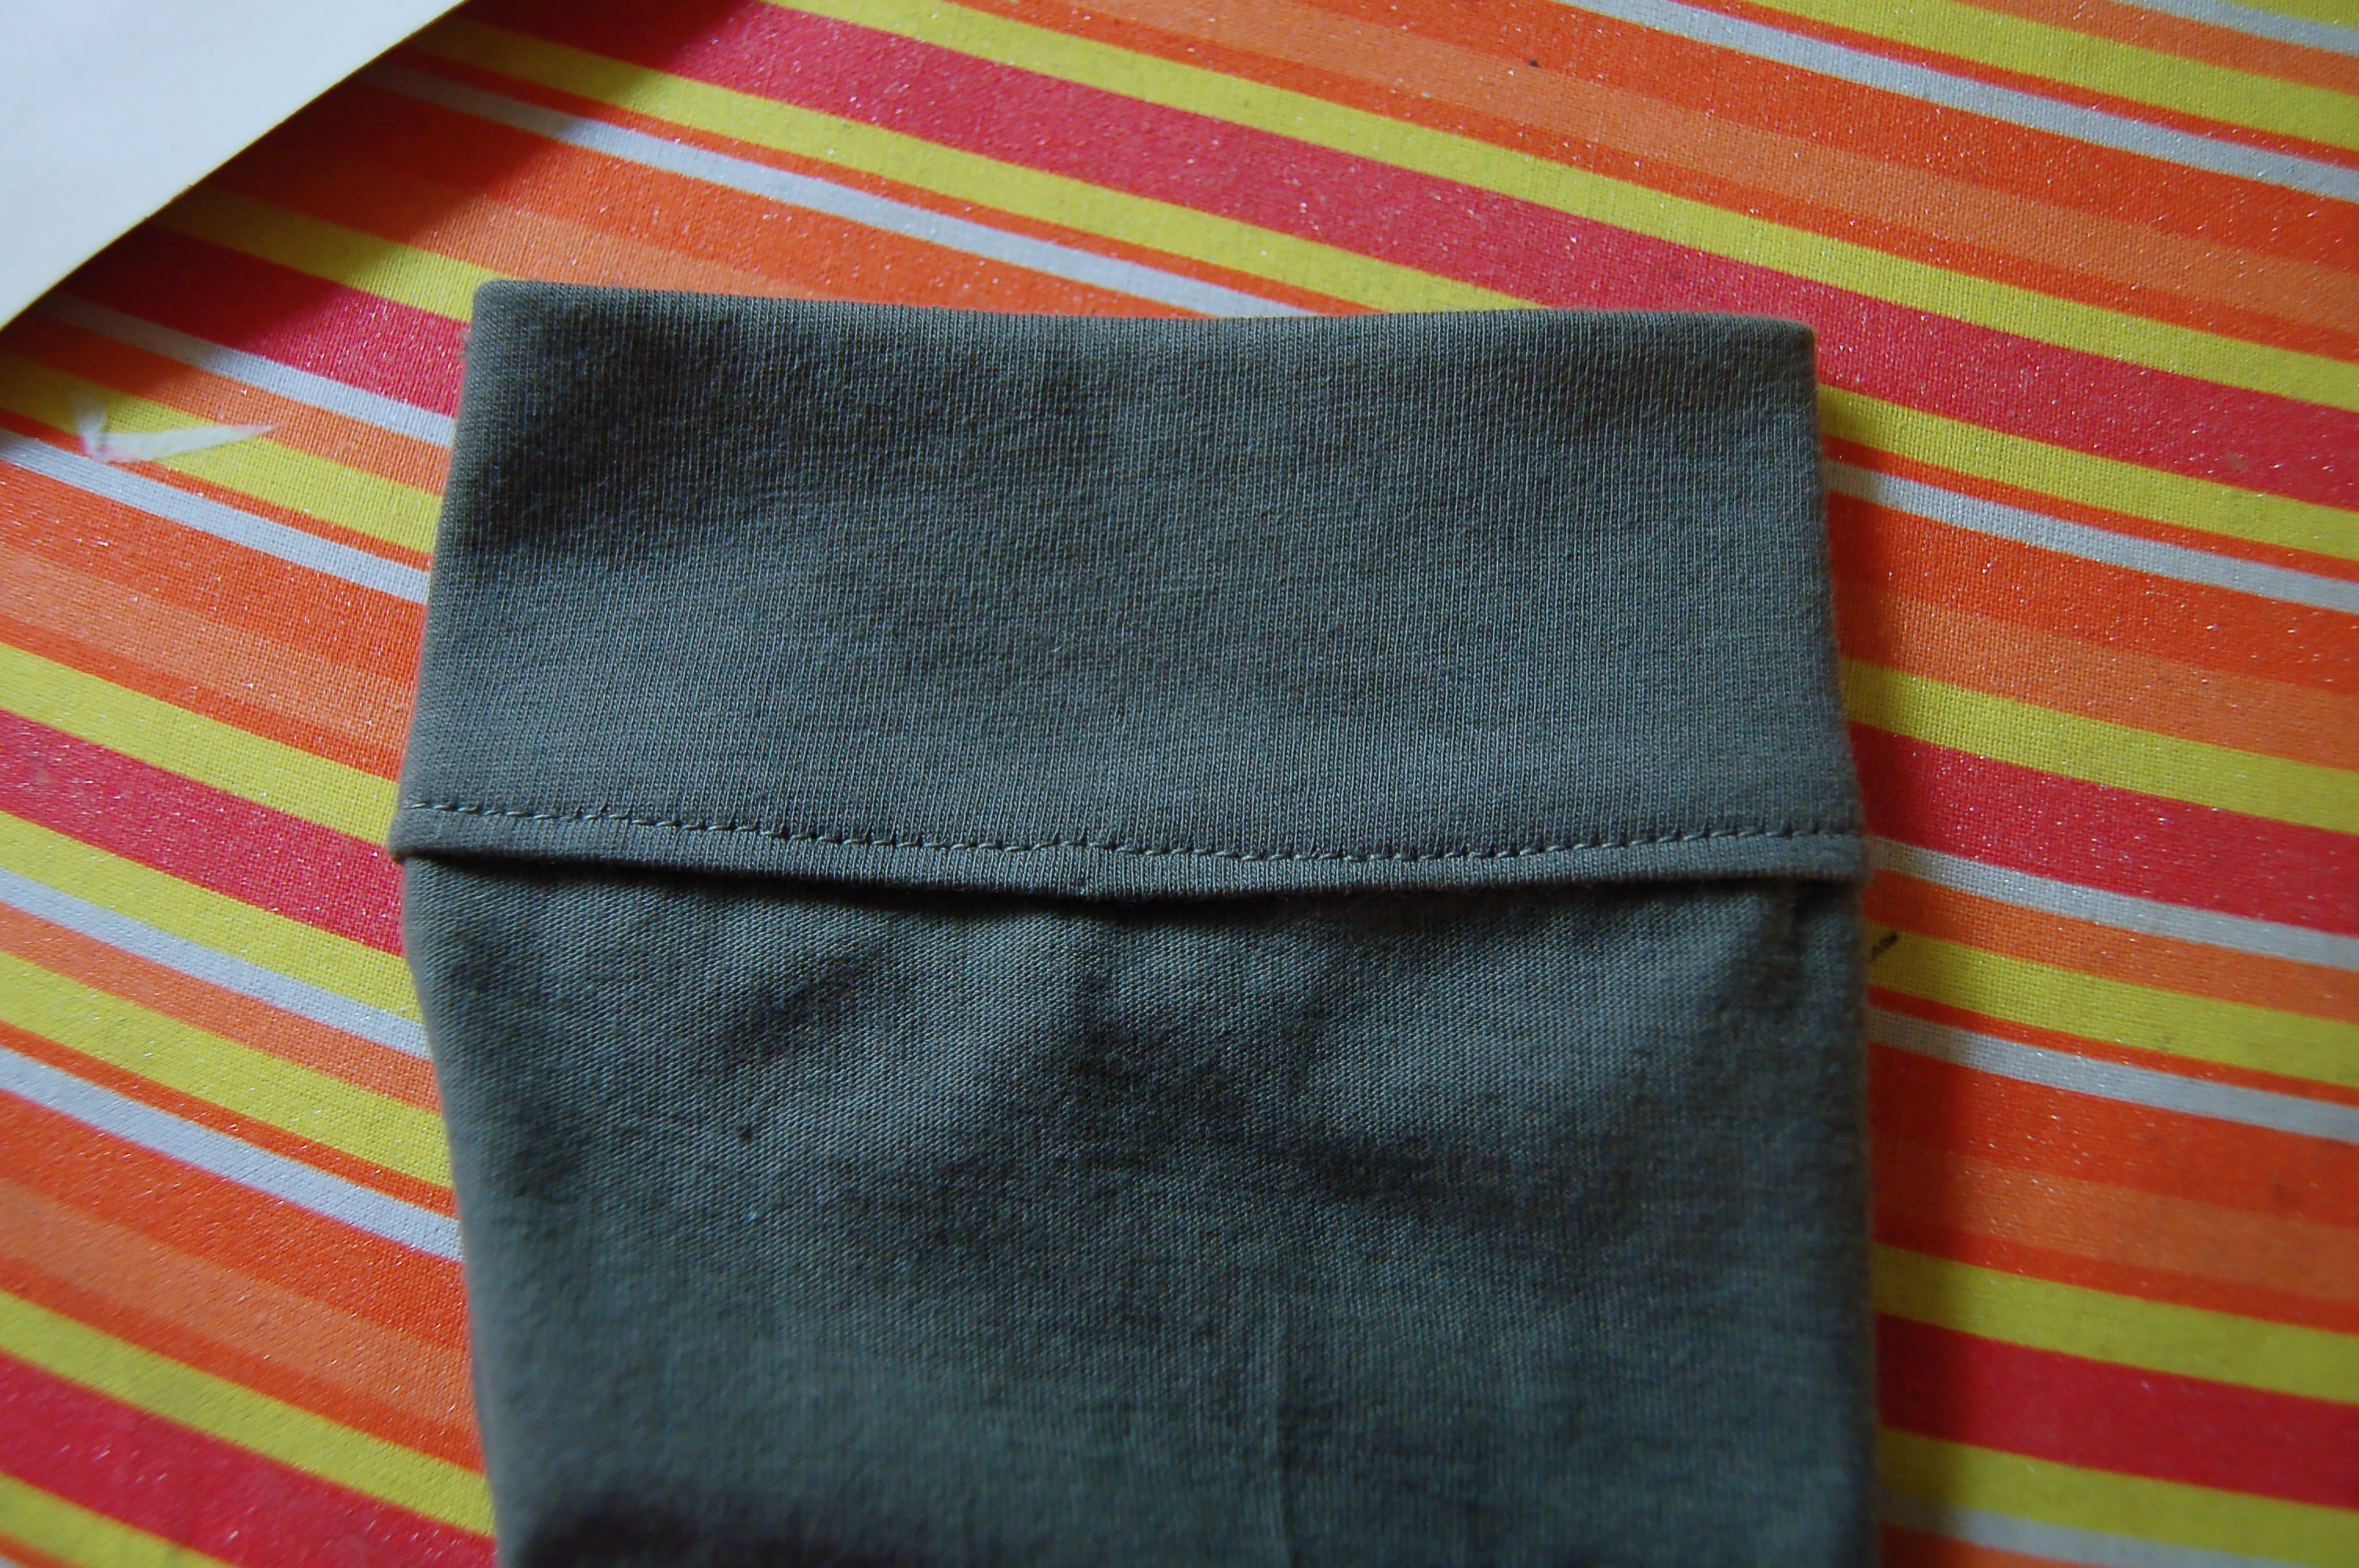 Tricks for sewing a shirt in knit fabric